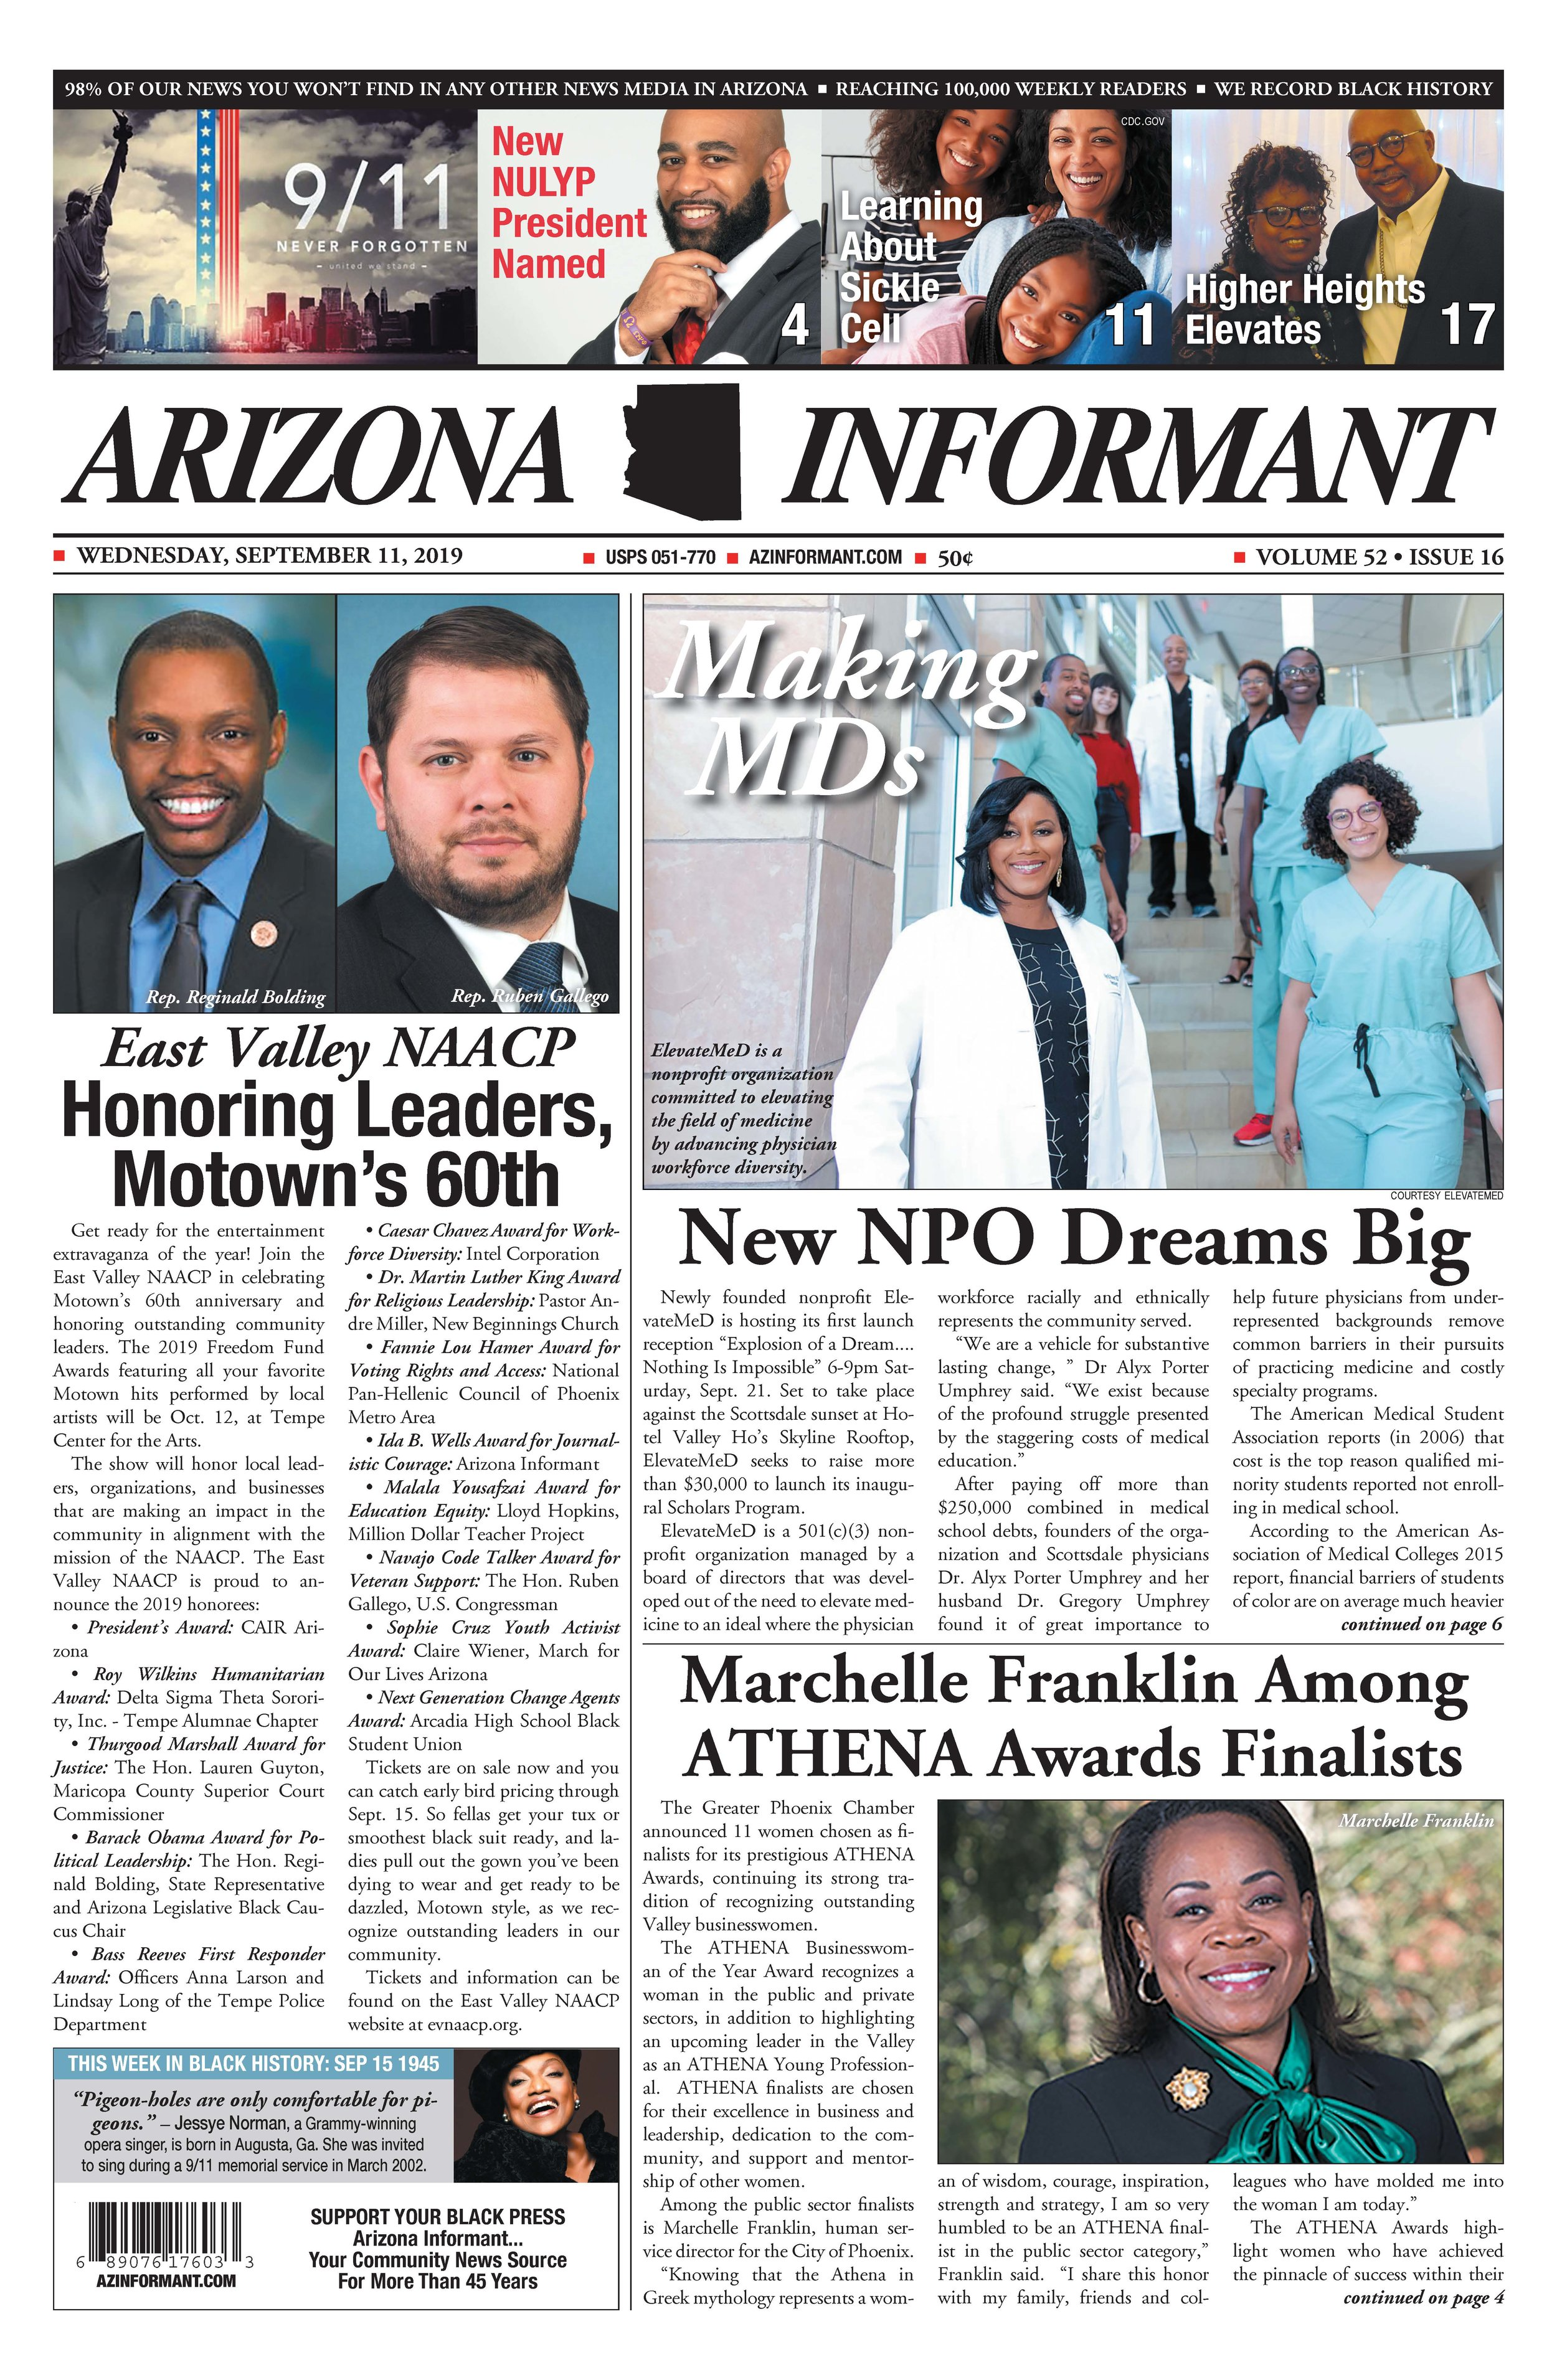 Arizona Informant Front Page - Making MDs [9/11/2019]